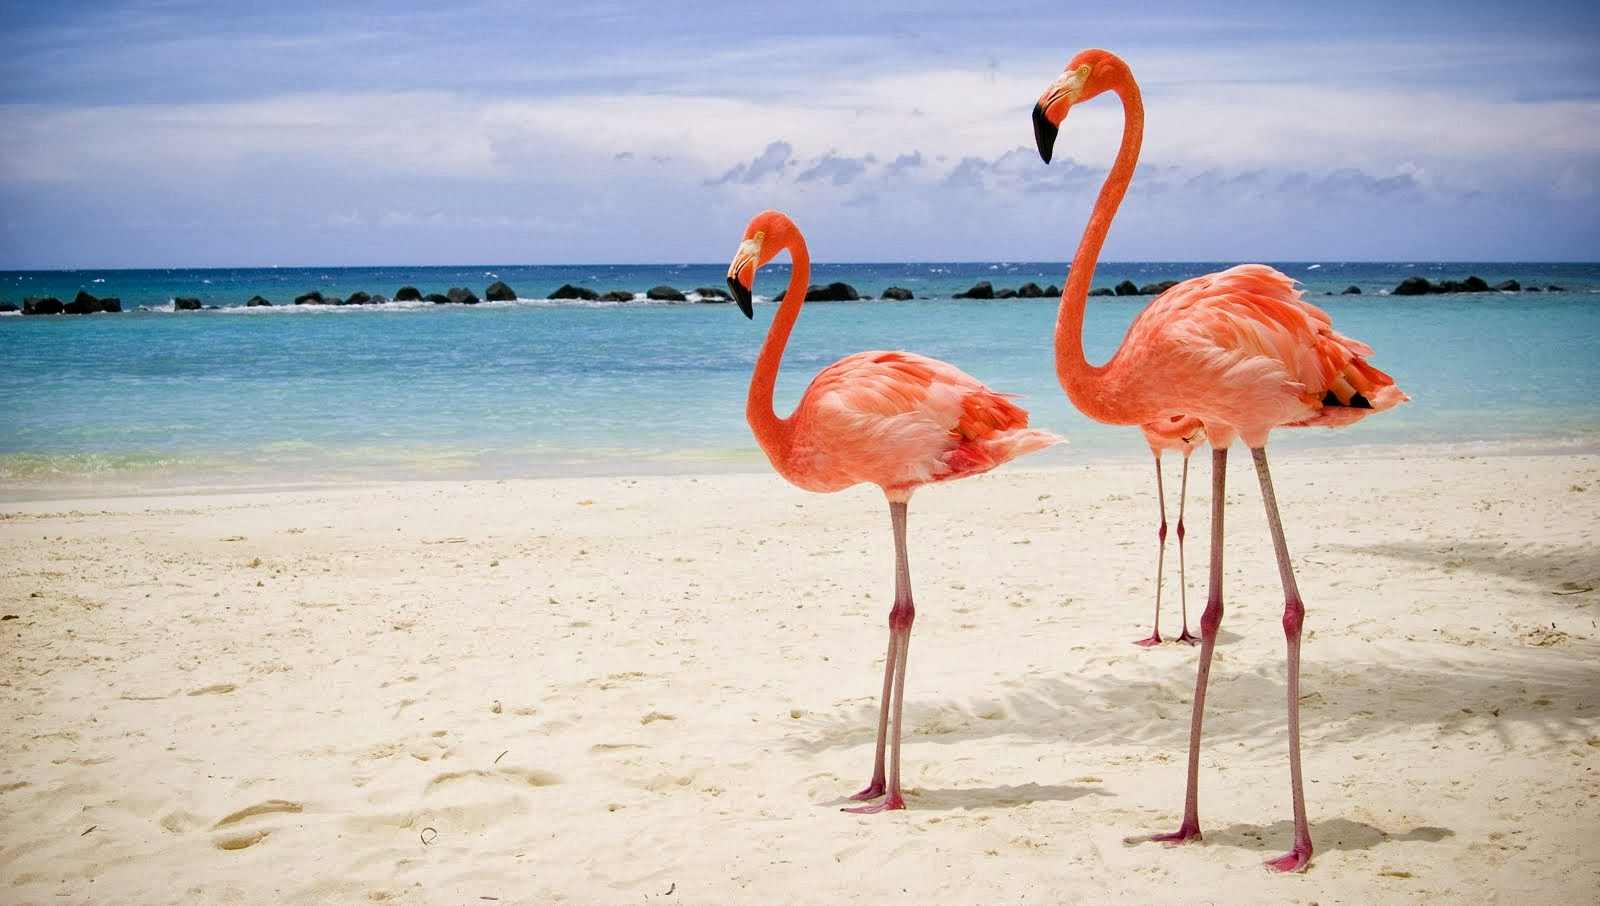 Vacation Inspiration # 127 - Aruba